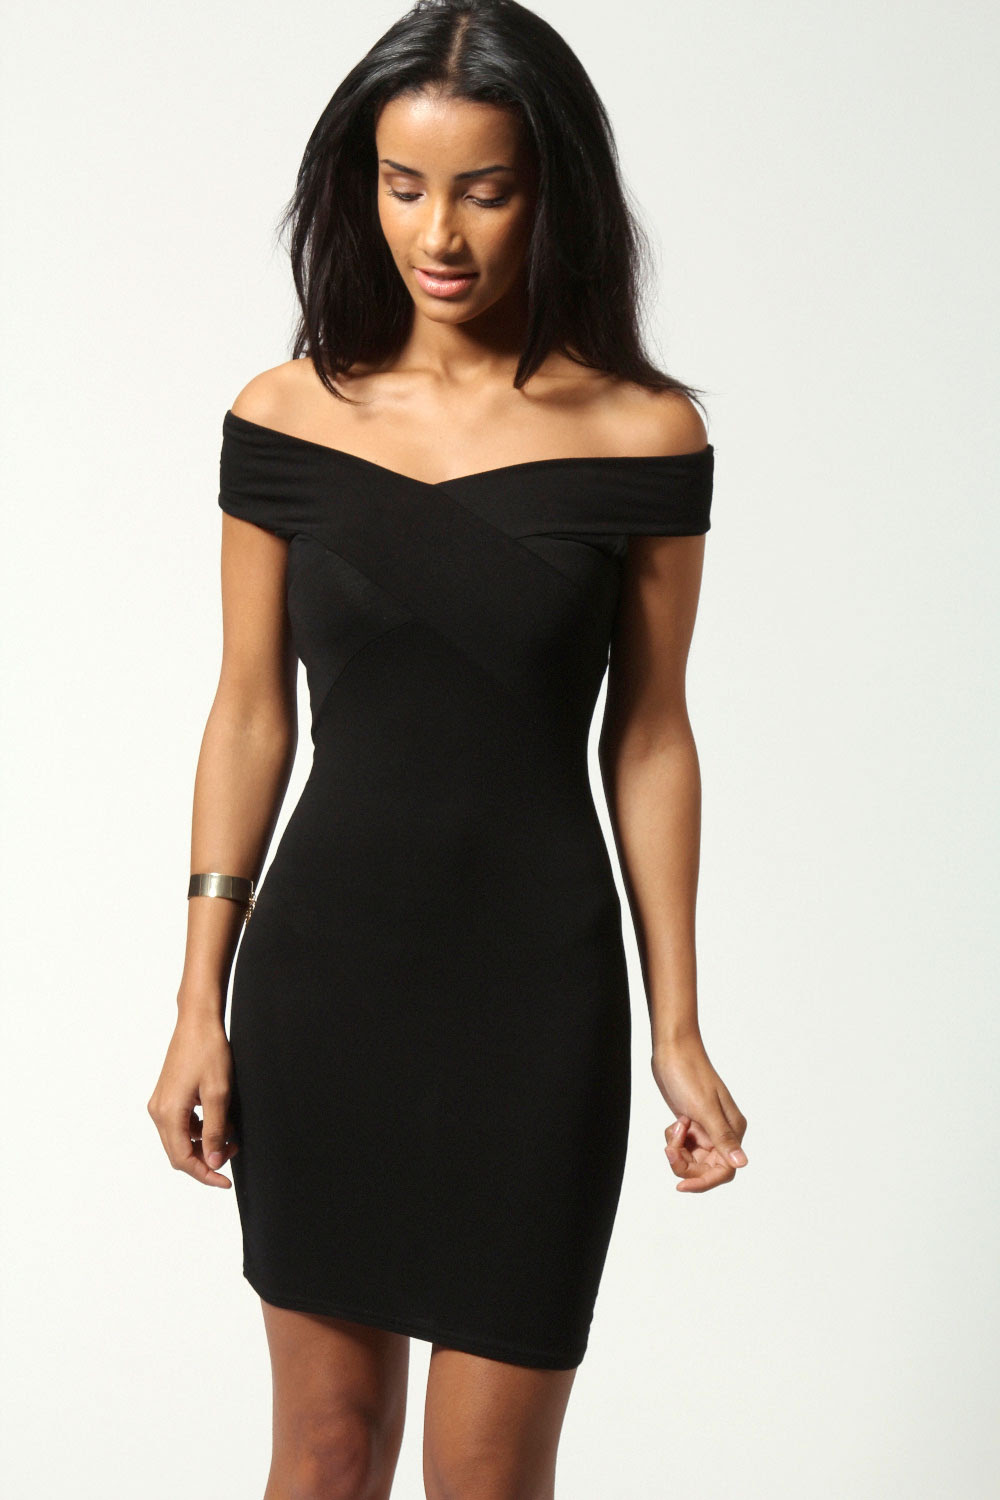 With jacket black bodycon dress off the shoulder pain style guide